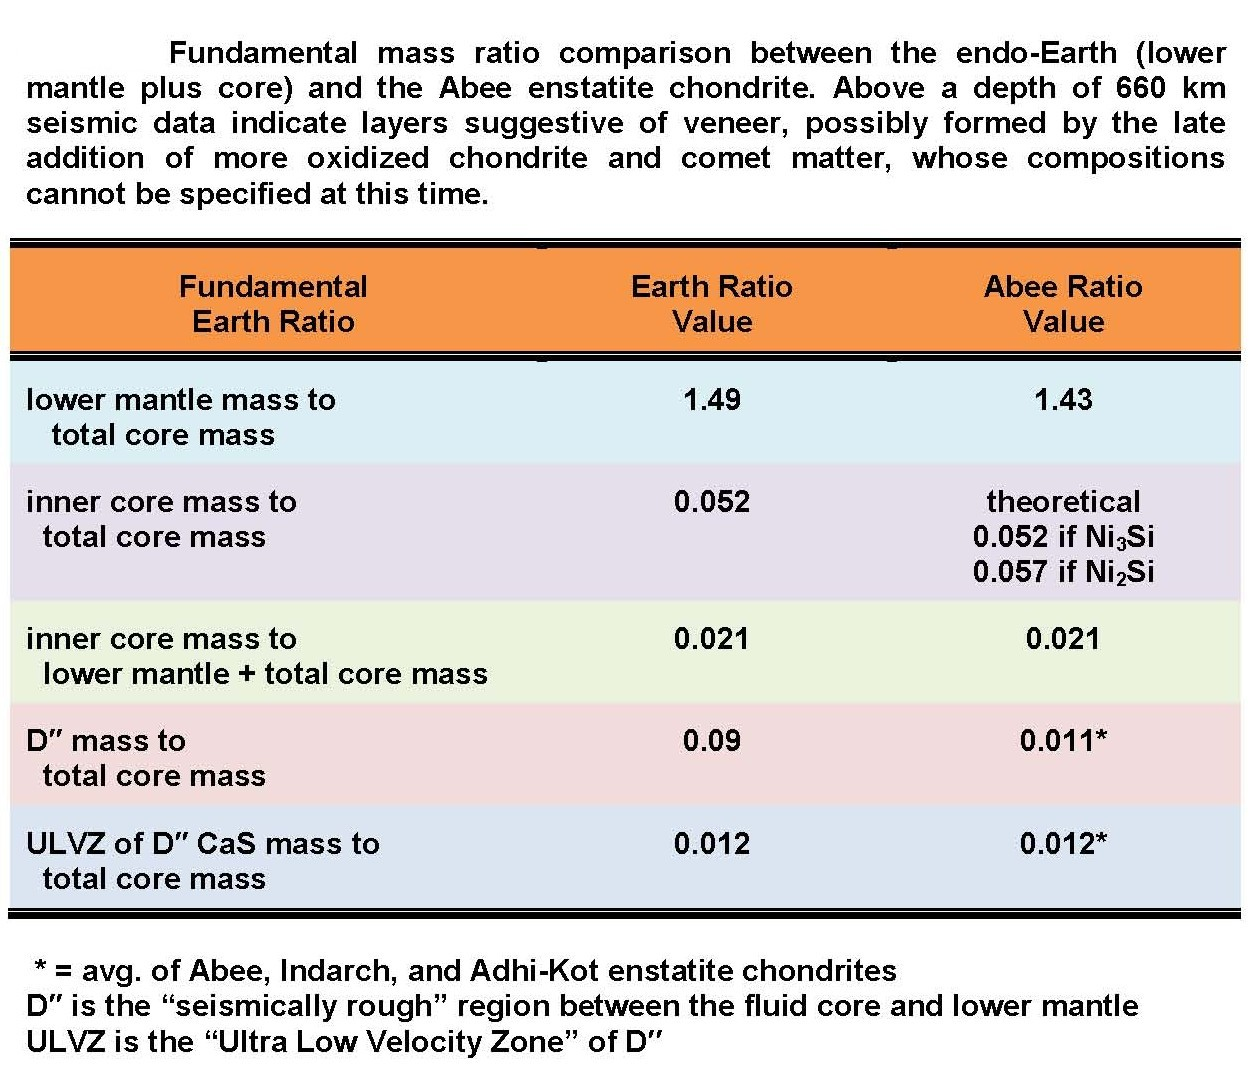 ... expressed as mass ratios, match quite precisely corresponding  seismically determined parts of the Earth as shown in the table at right.